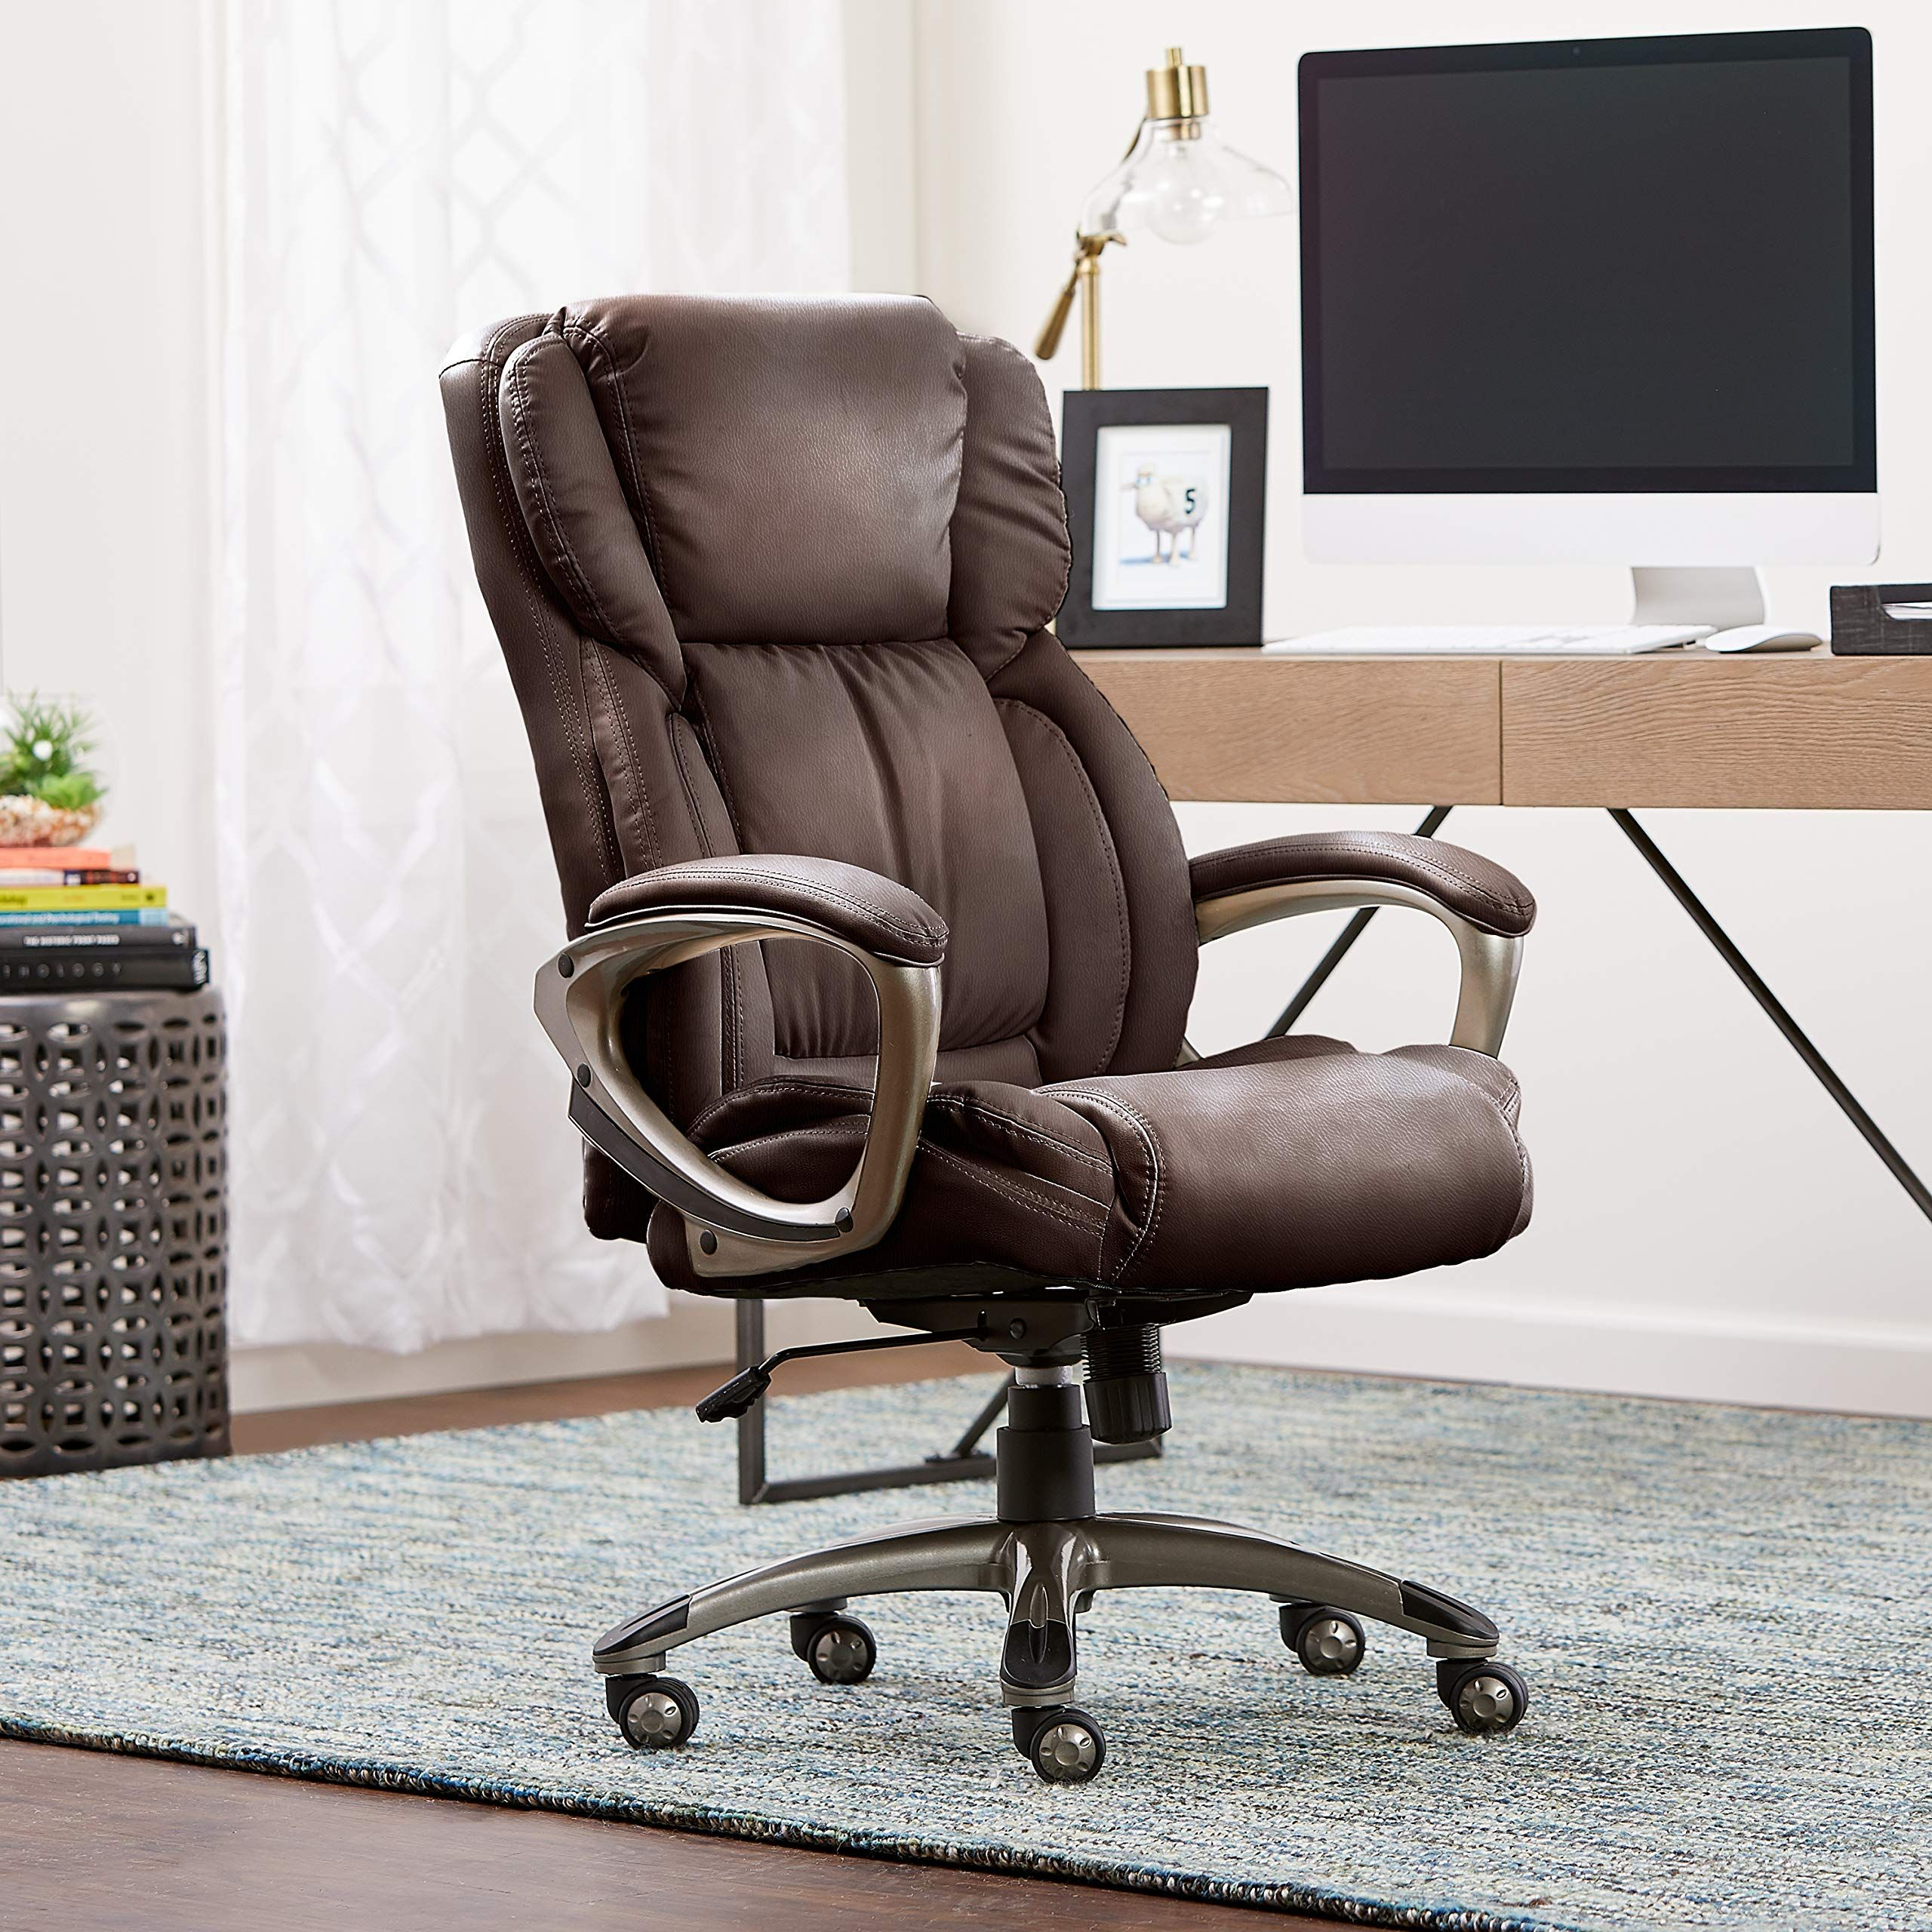 Serta Works Executive Office Chair, Bonded Leather, Brown * You